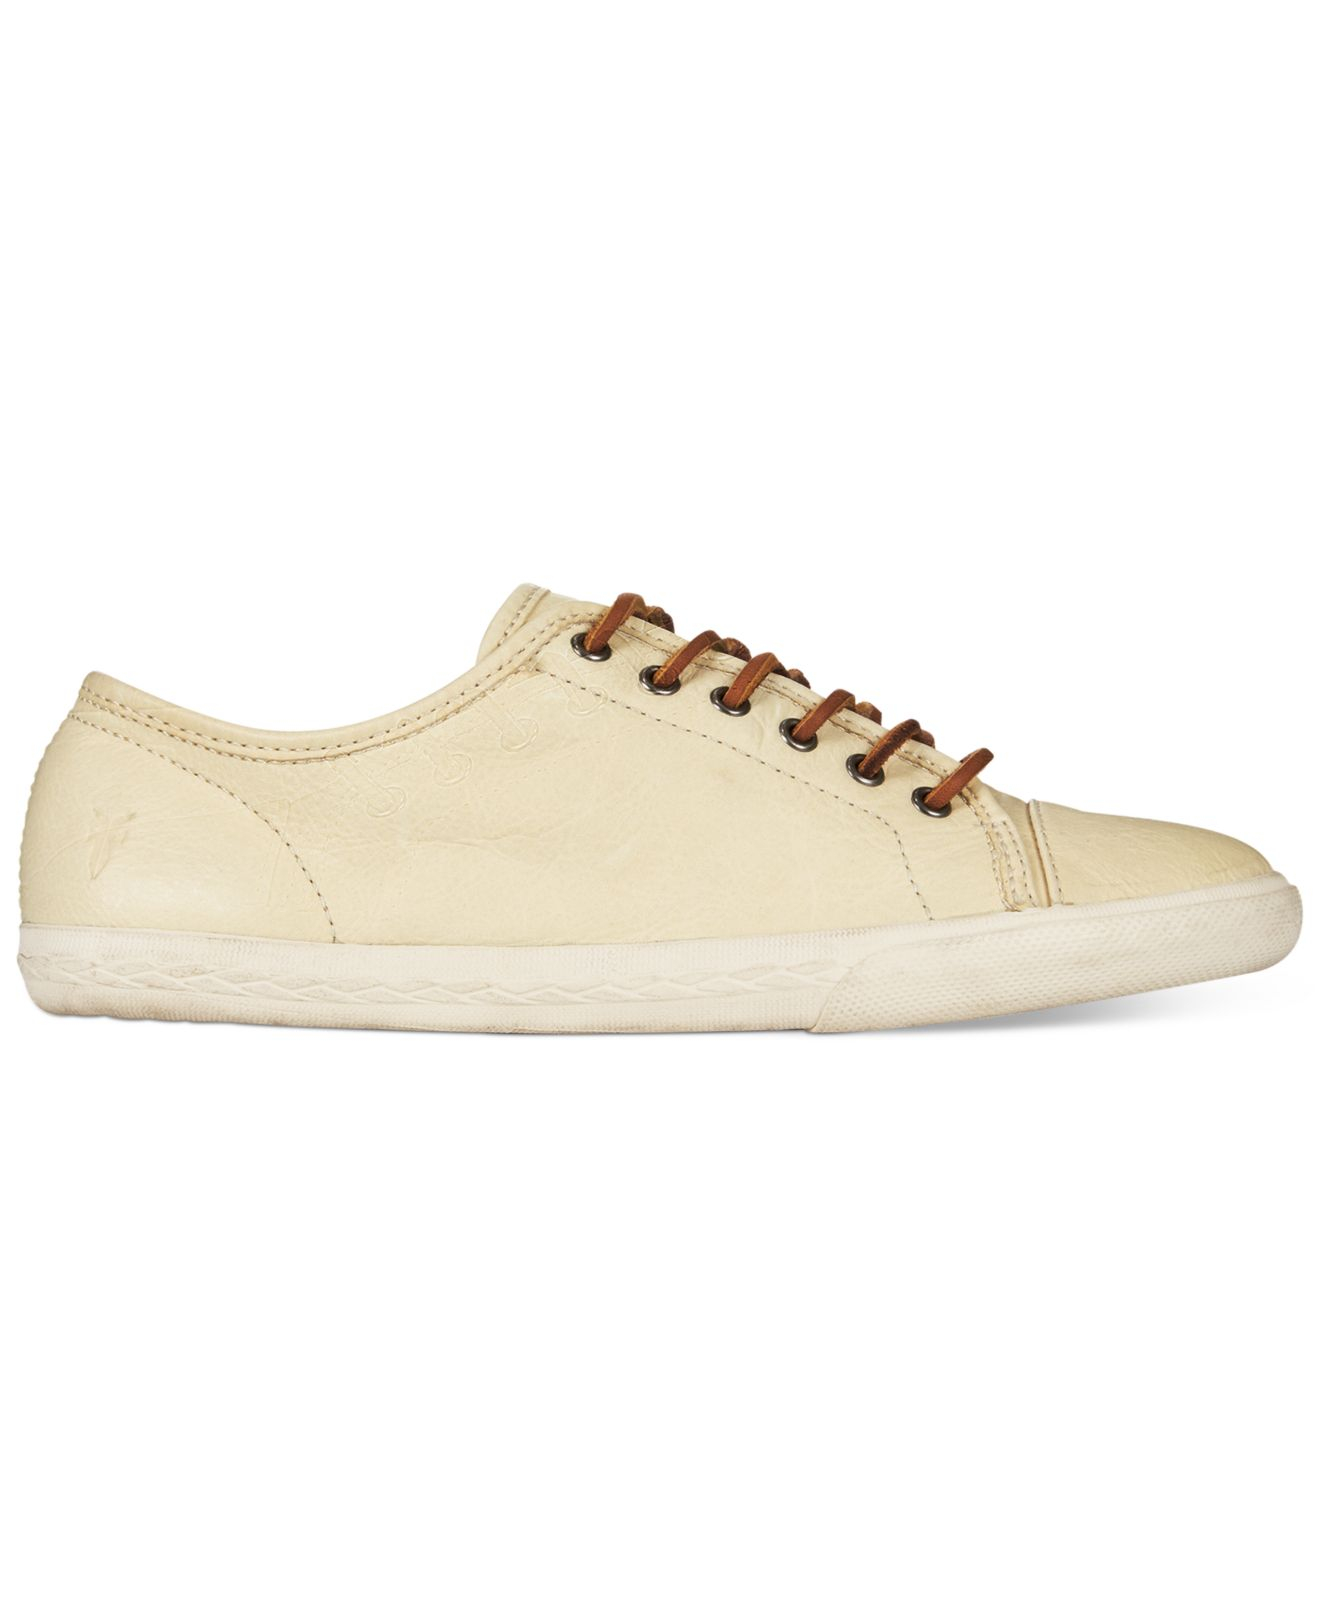 Frye Leather Women's Mindy Low Lace-up